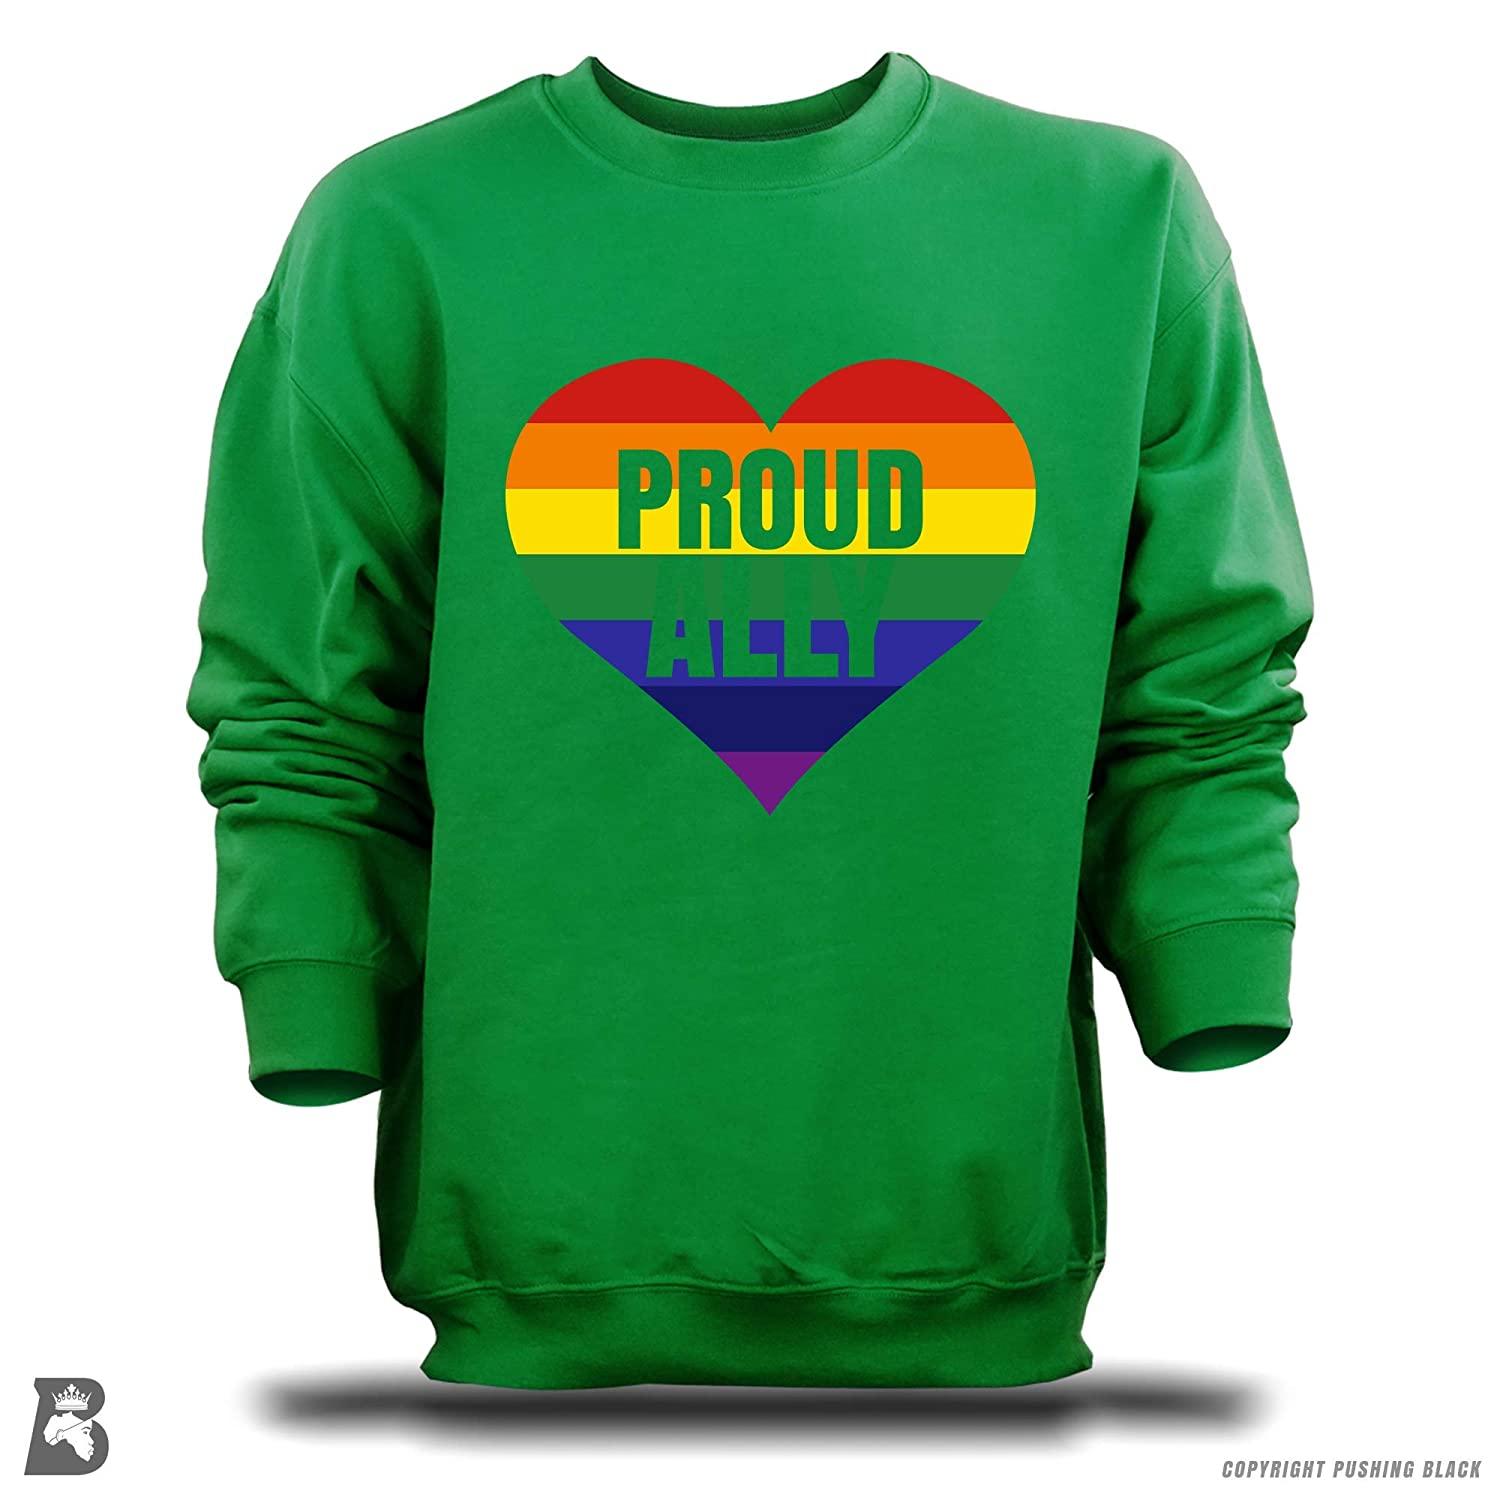 and More Tank Tops Kitchen Aprons Gay Pride Month T-Shirts Hoodies Pushing Black Proud Ally Sweatshirts